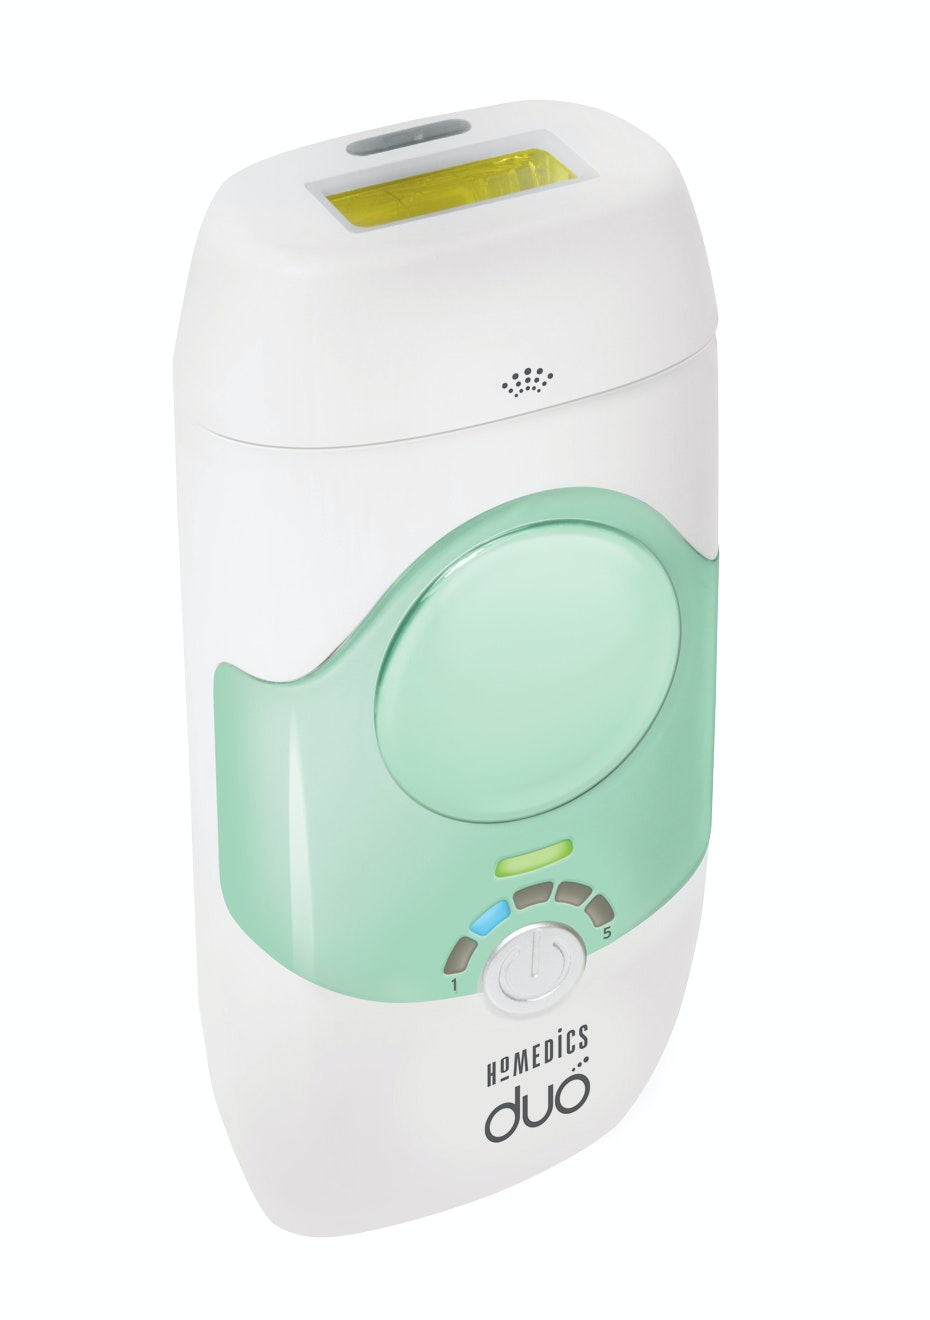 Homedics - IPL Duo Hair Reduction & Removal System